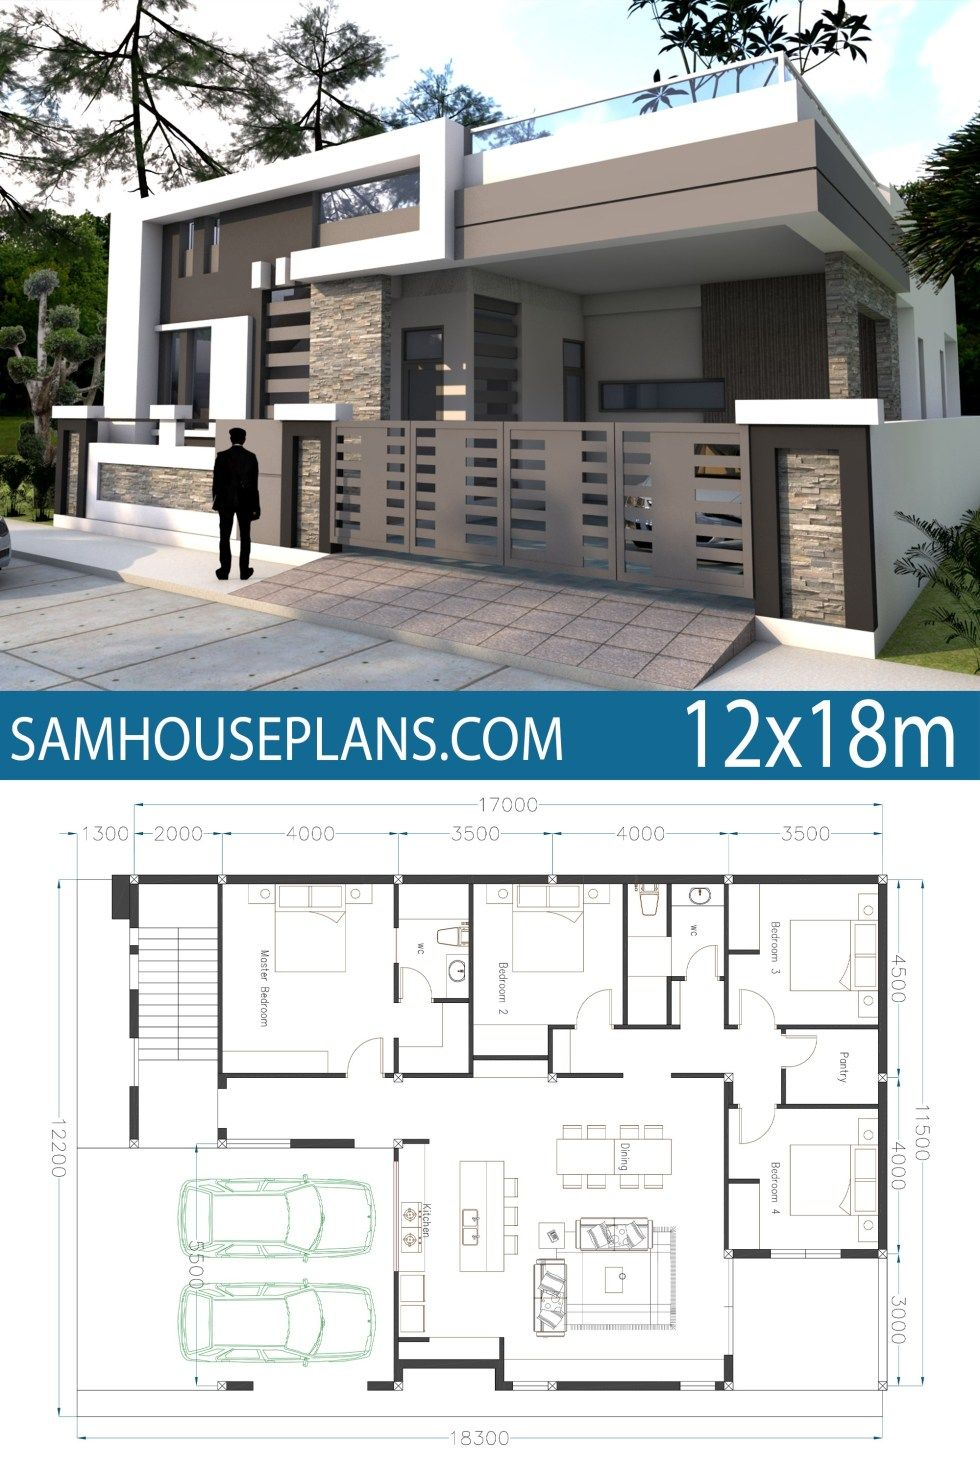 Home Design 40x60f With 4 Bedrooms Sam House Plans Small Modern House Plans House Layouts Model House Plan